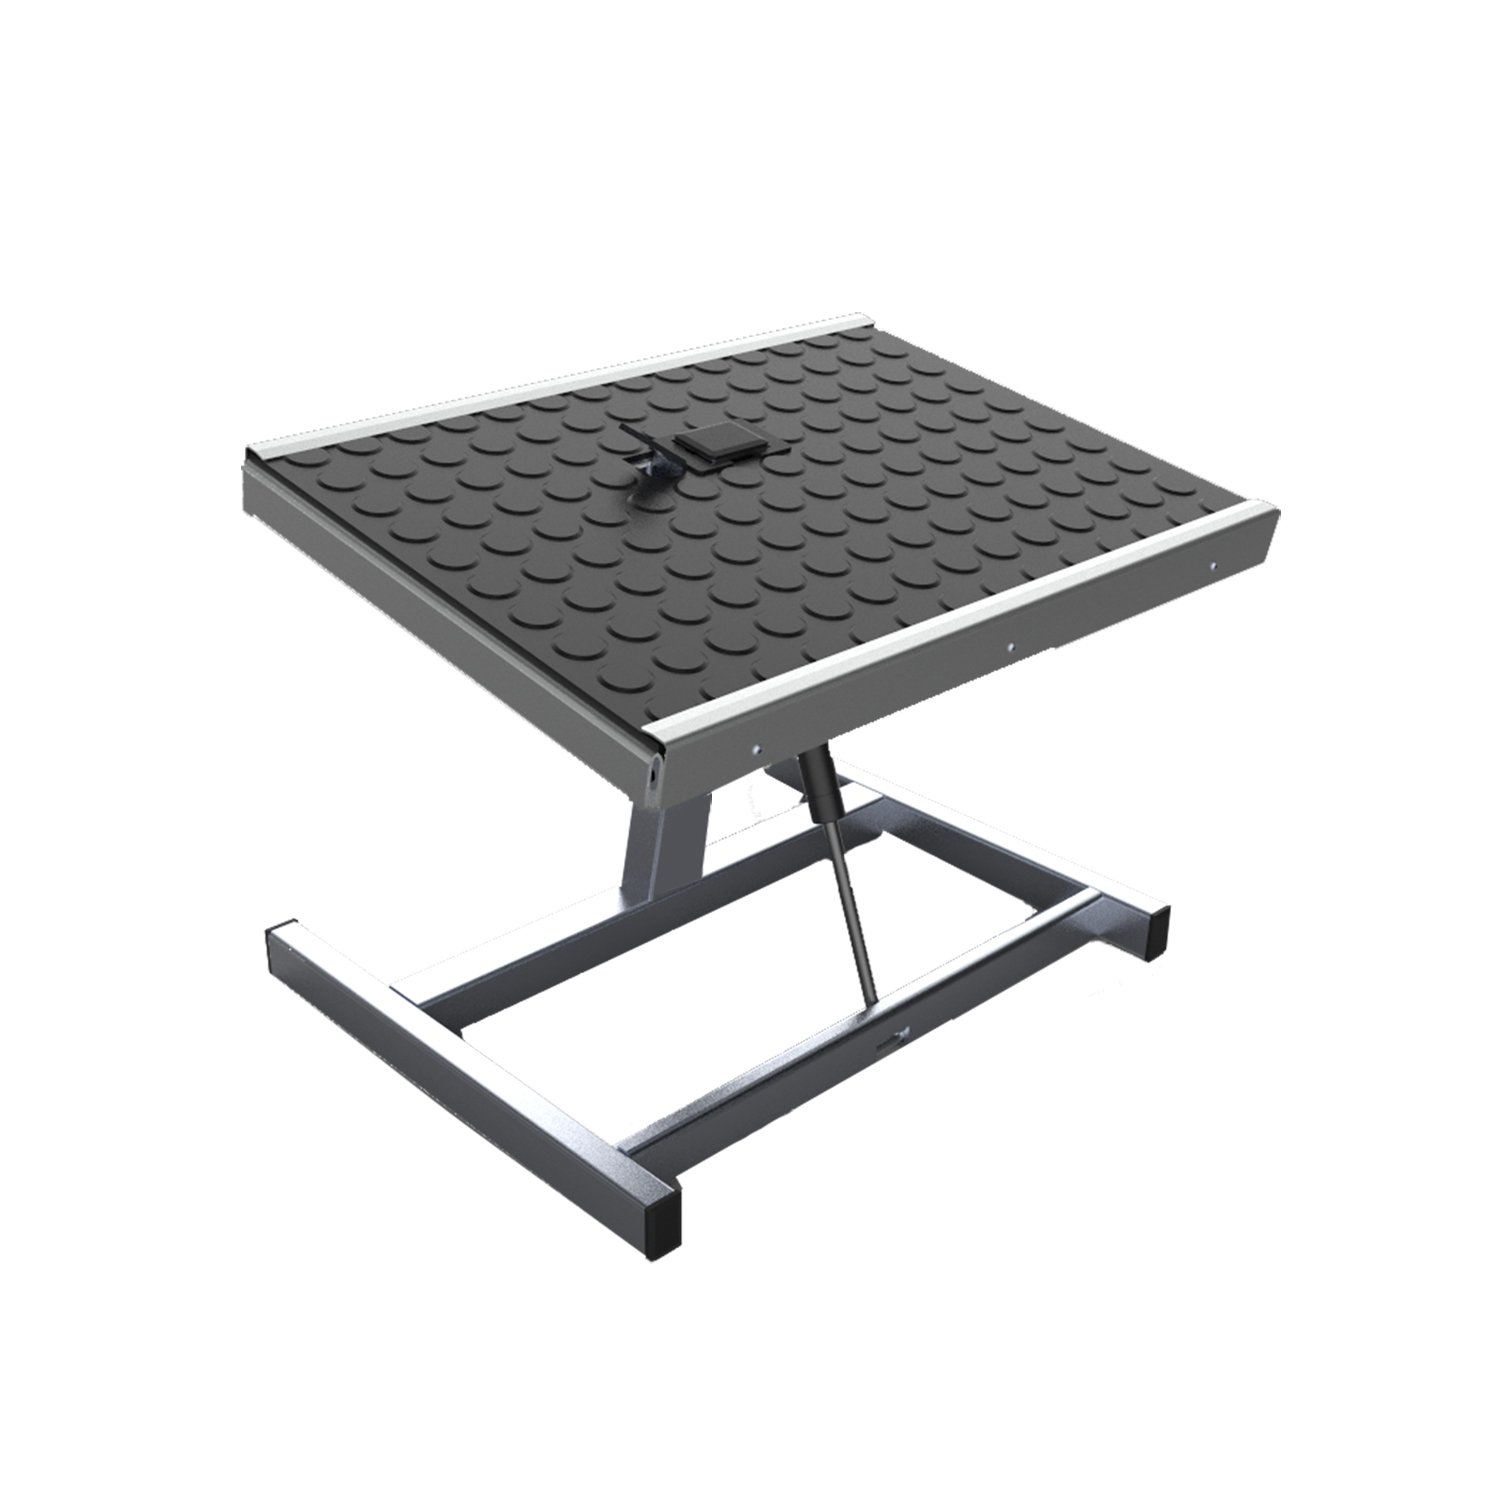 Annstory Auto Adjustable Footrest,Ergonomic Comfortable Height-Adjustable Footstool for Home and Office (Heavy Frame) by Annstory (Image #5)